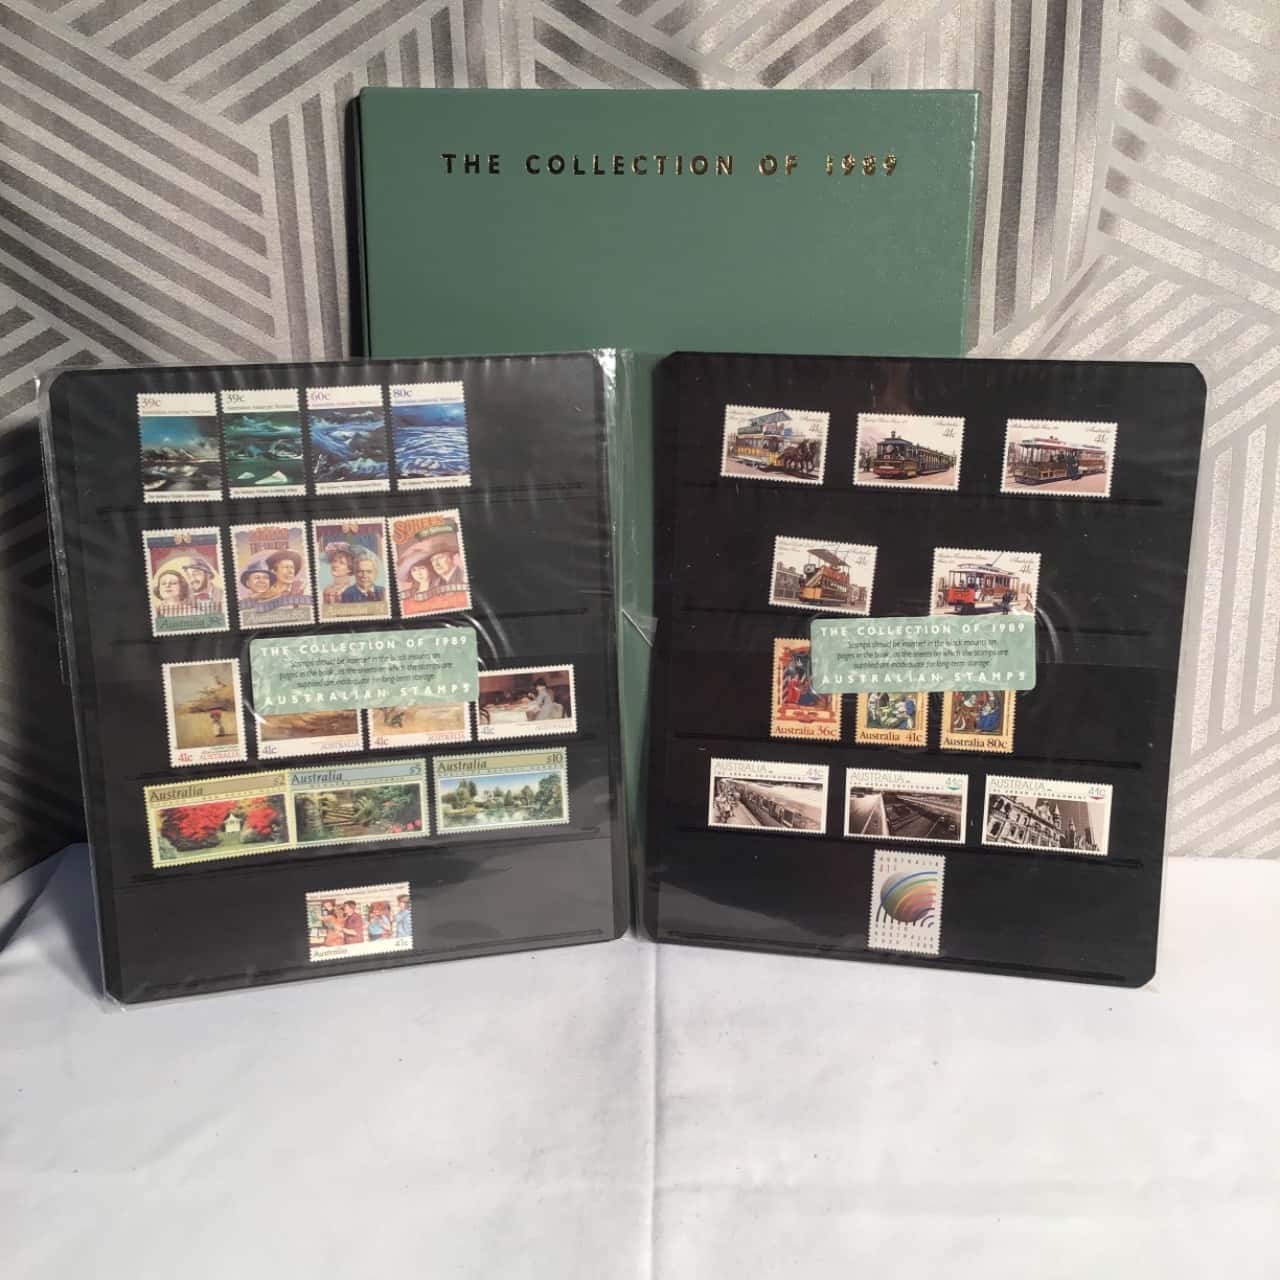 The Collection Of 1989 Australian Stamps Book